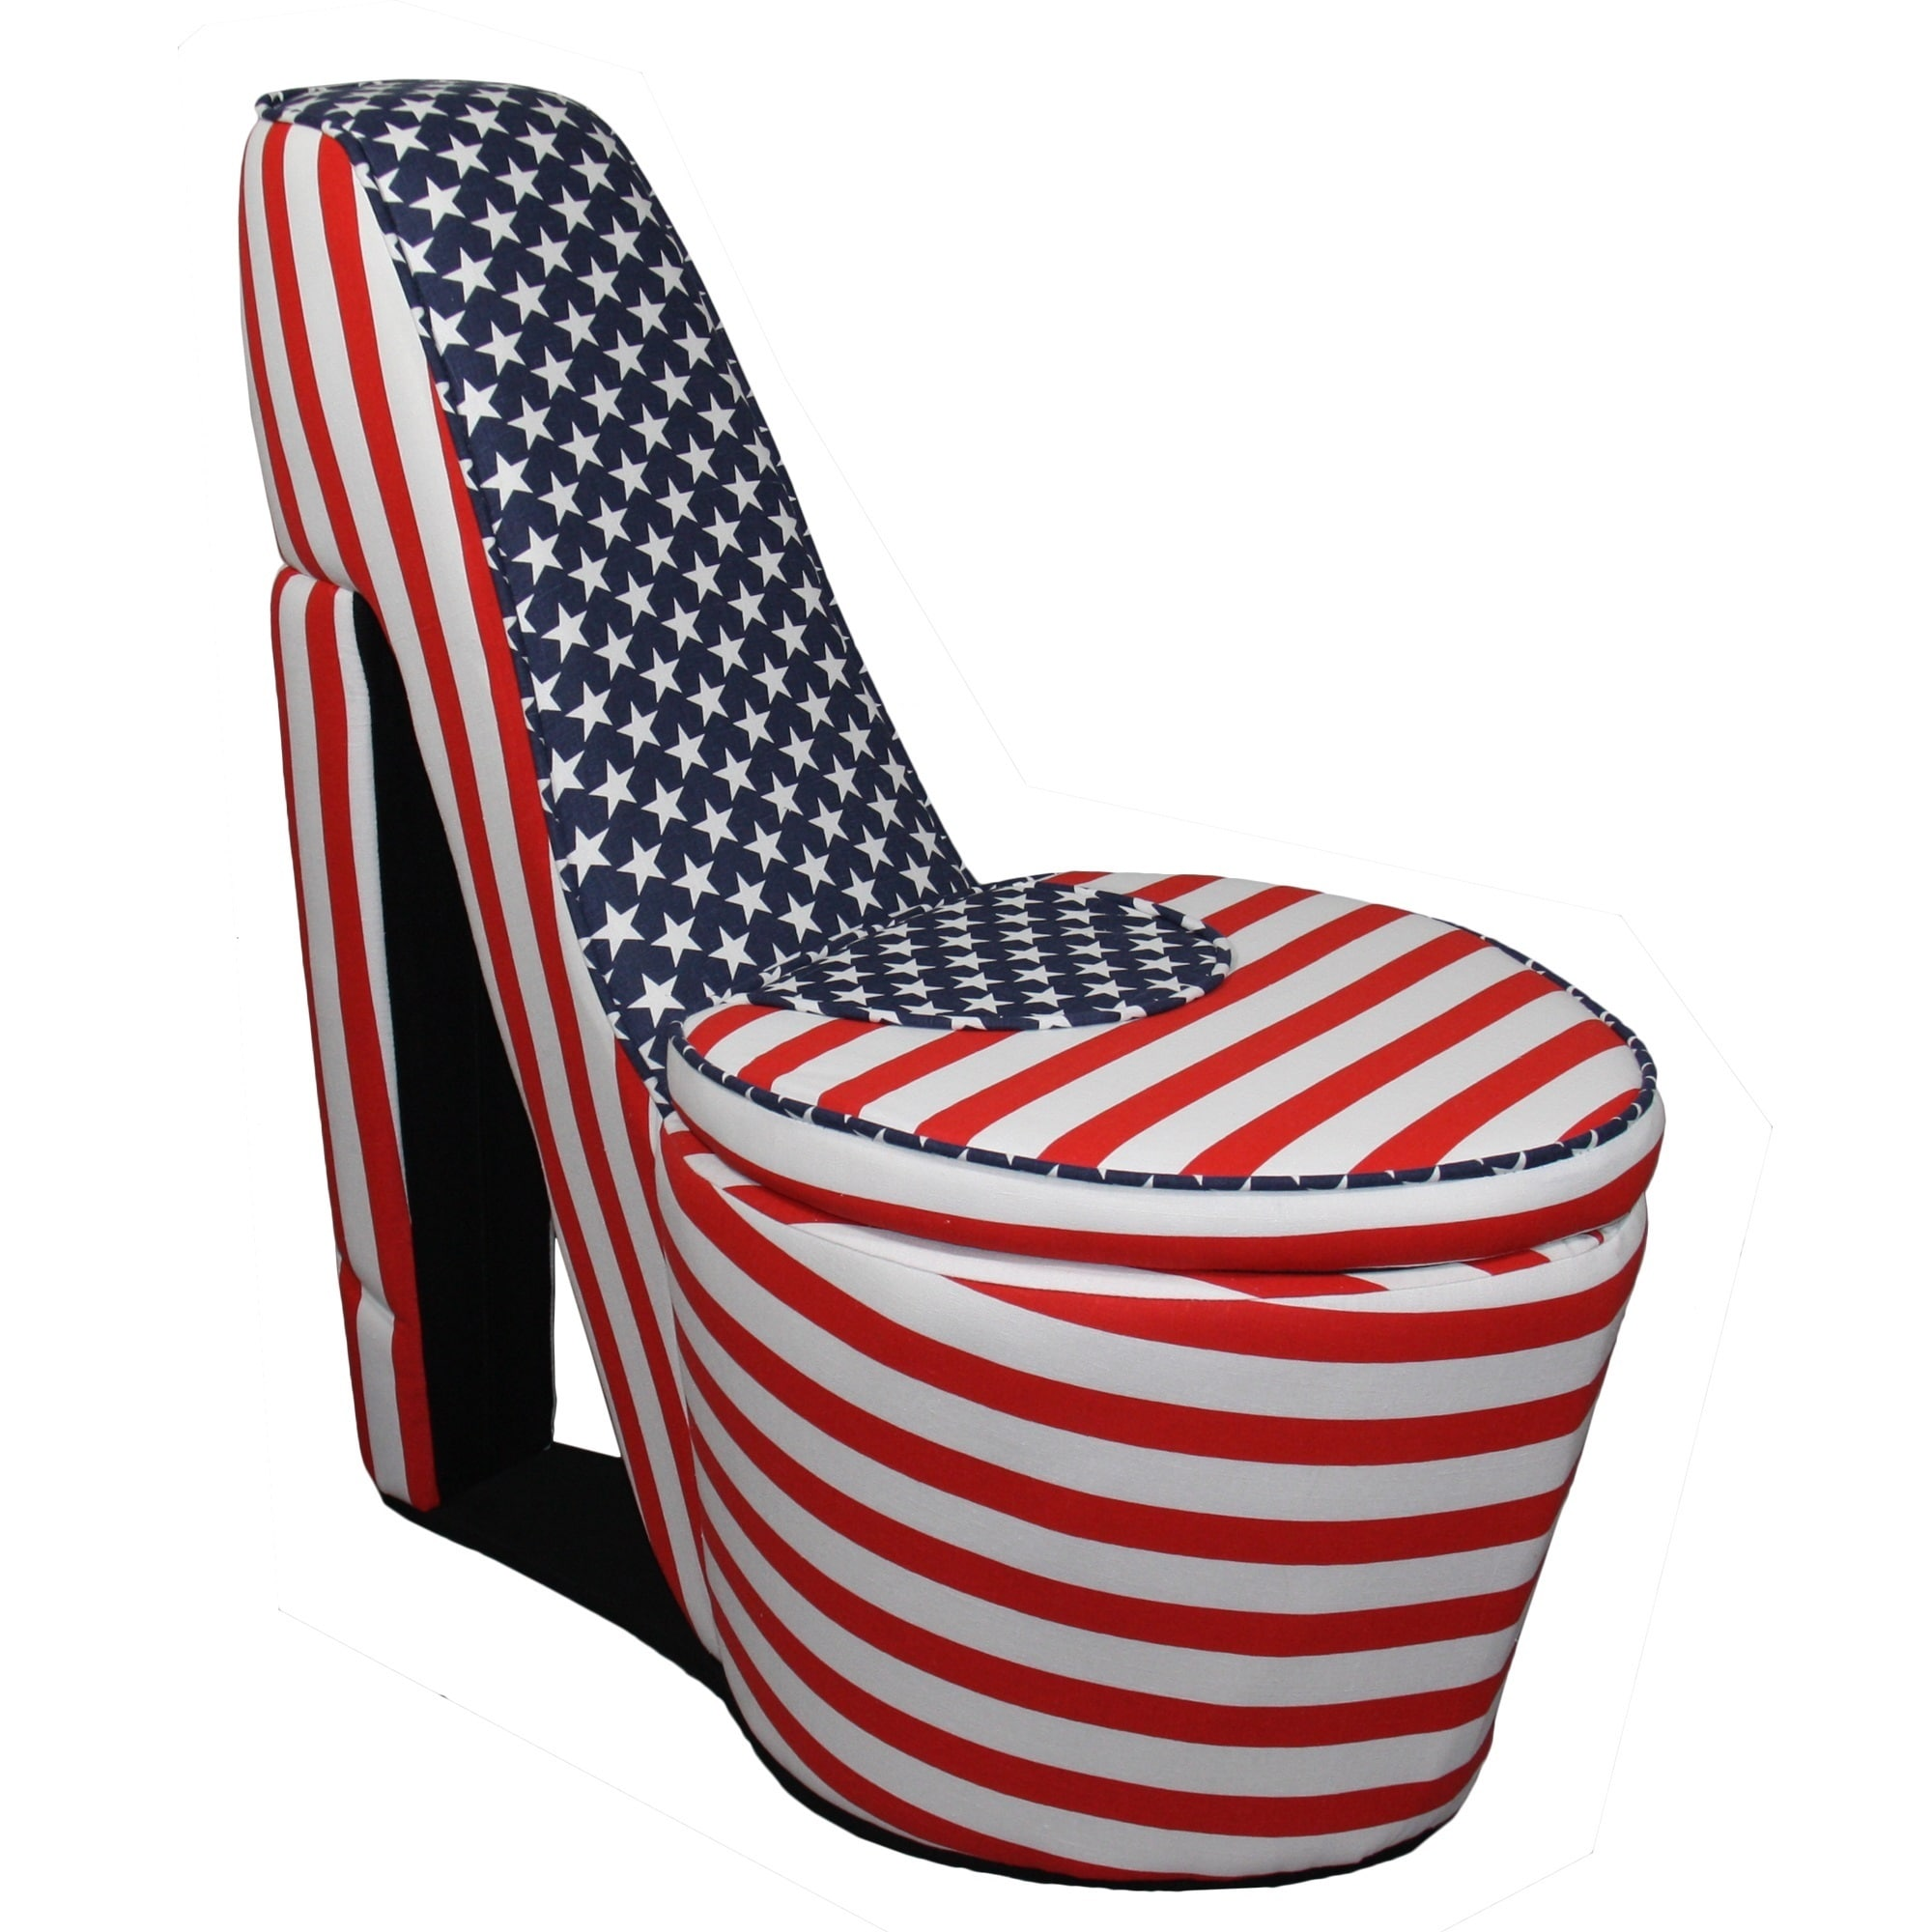 Exceptionnel Shop American Flag High Heels Storage Chair   Free Shipping Today    Overstock.com   10201029